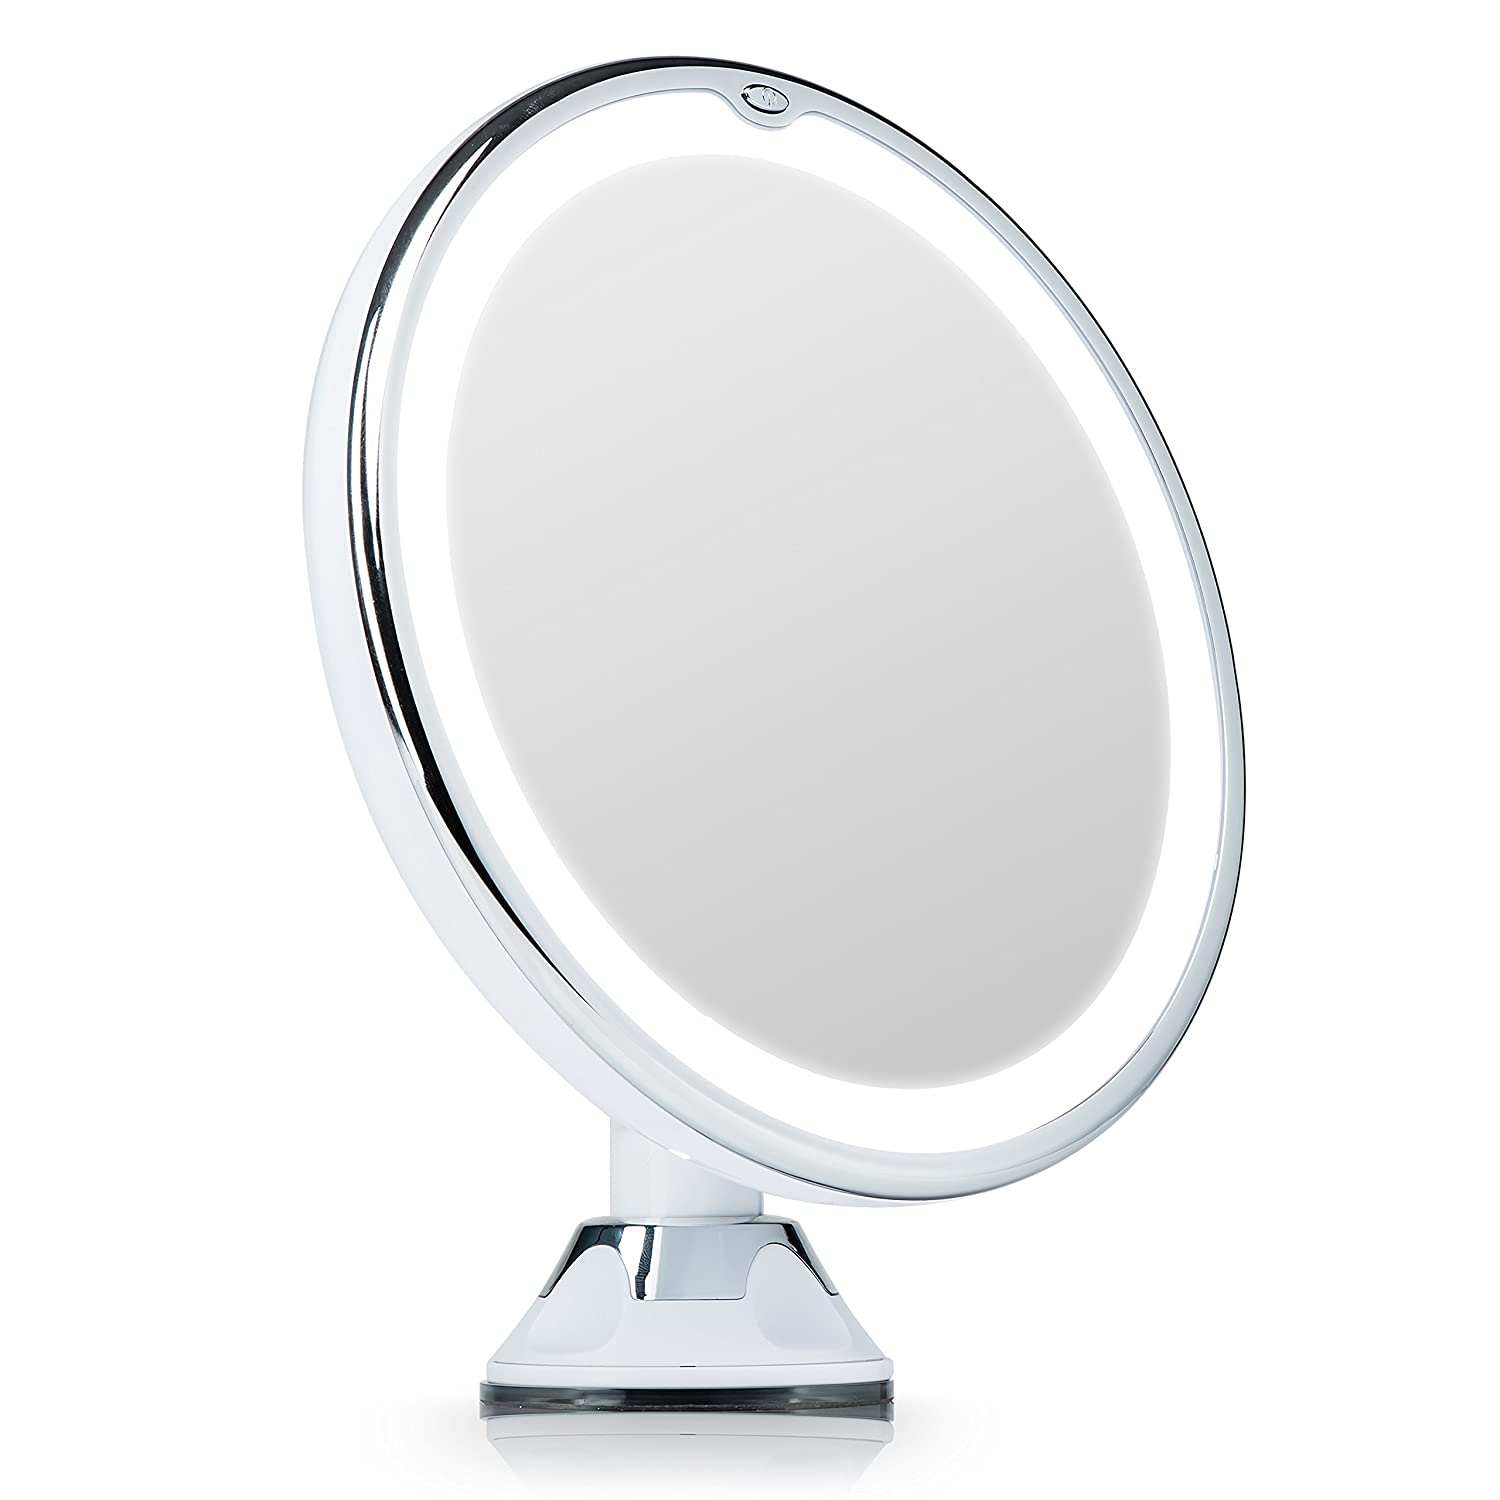 Fancii Lighted Vanity Makeup Mirror, 7X Magnifying with Natural LED Ring Lights, Locking Suction, Cordless Travel Cosmetic Mirror